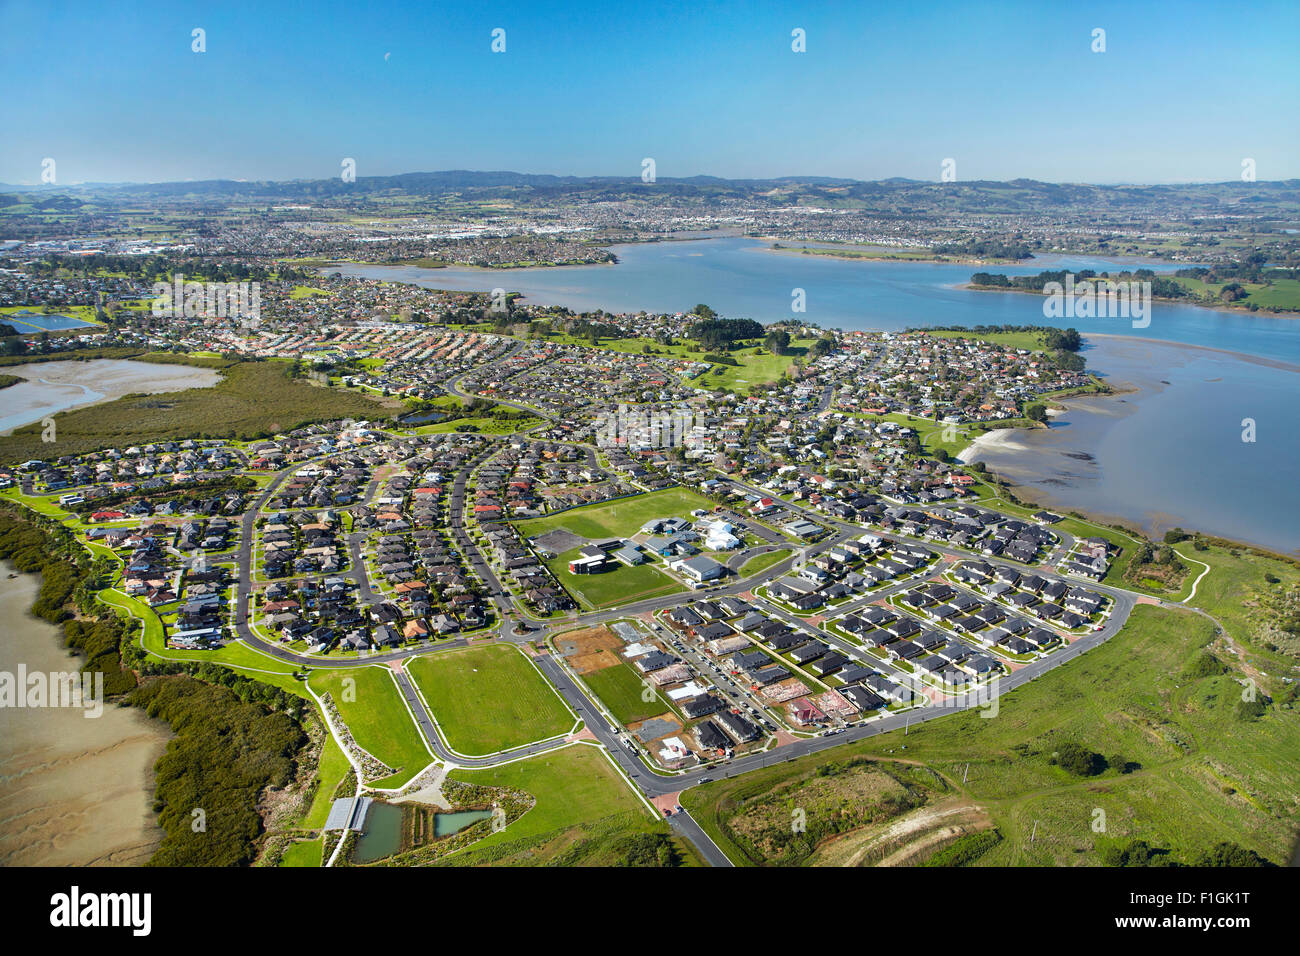 Wattle Downs and Manukau Harbour, Auckland, North Island, New Zealand - aerial - Stock Image